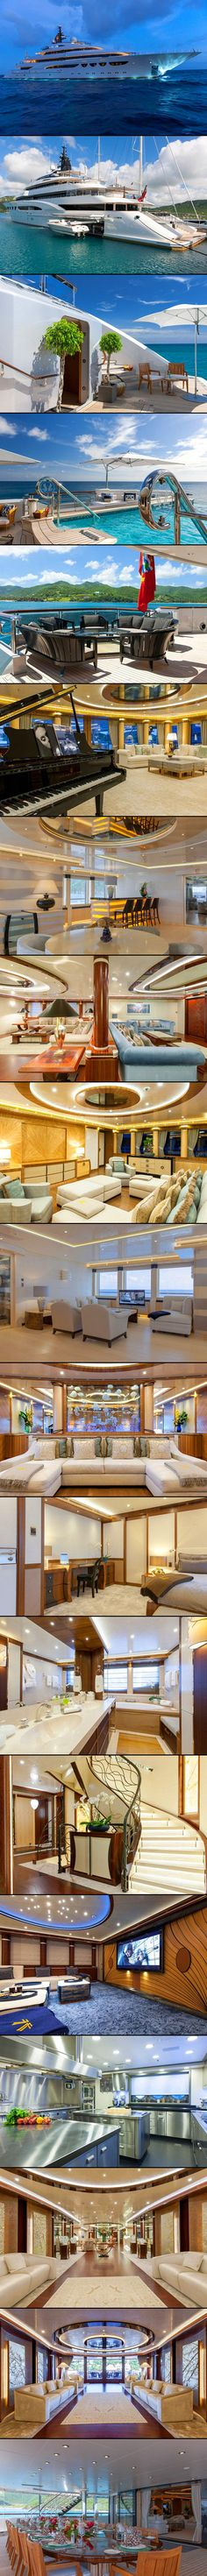 The 86 m yacht is called the Quattroelle. Its name means Love, Life, Freedom and Luxury and its easy to see why. The perfect place to relax and unwind from the stress of everyday life…if you could afford it of course! The broker, Moran Ship & Yacht, would not disclose the new owner or sale price, but the yacht was previously available for charter for $1.29 million per week.